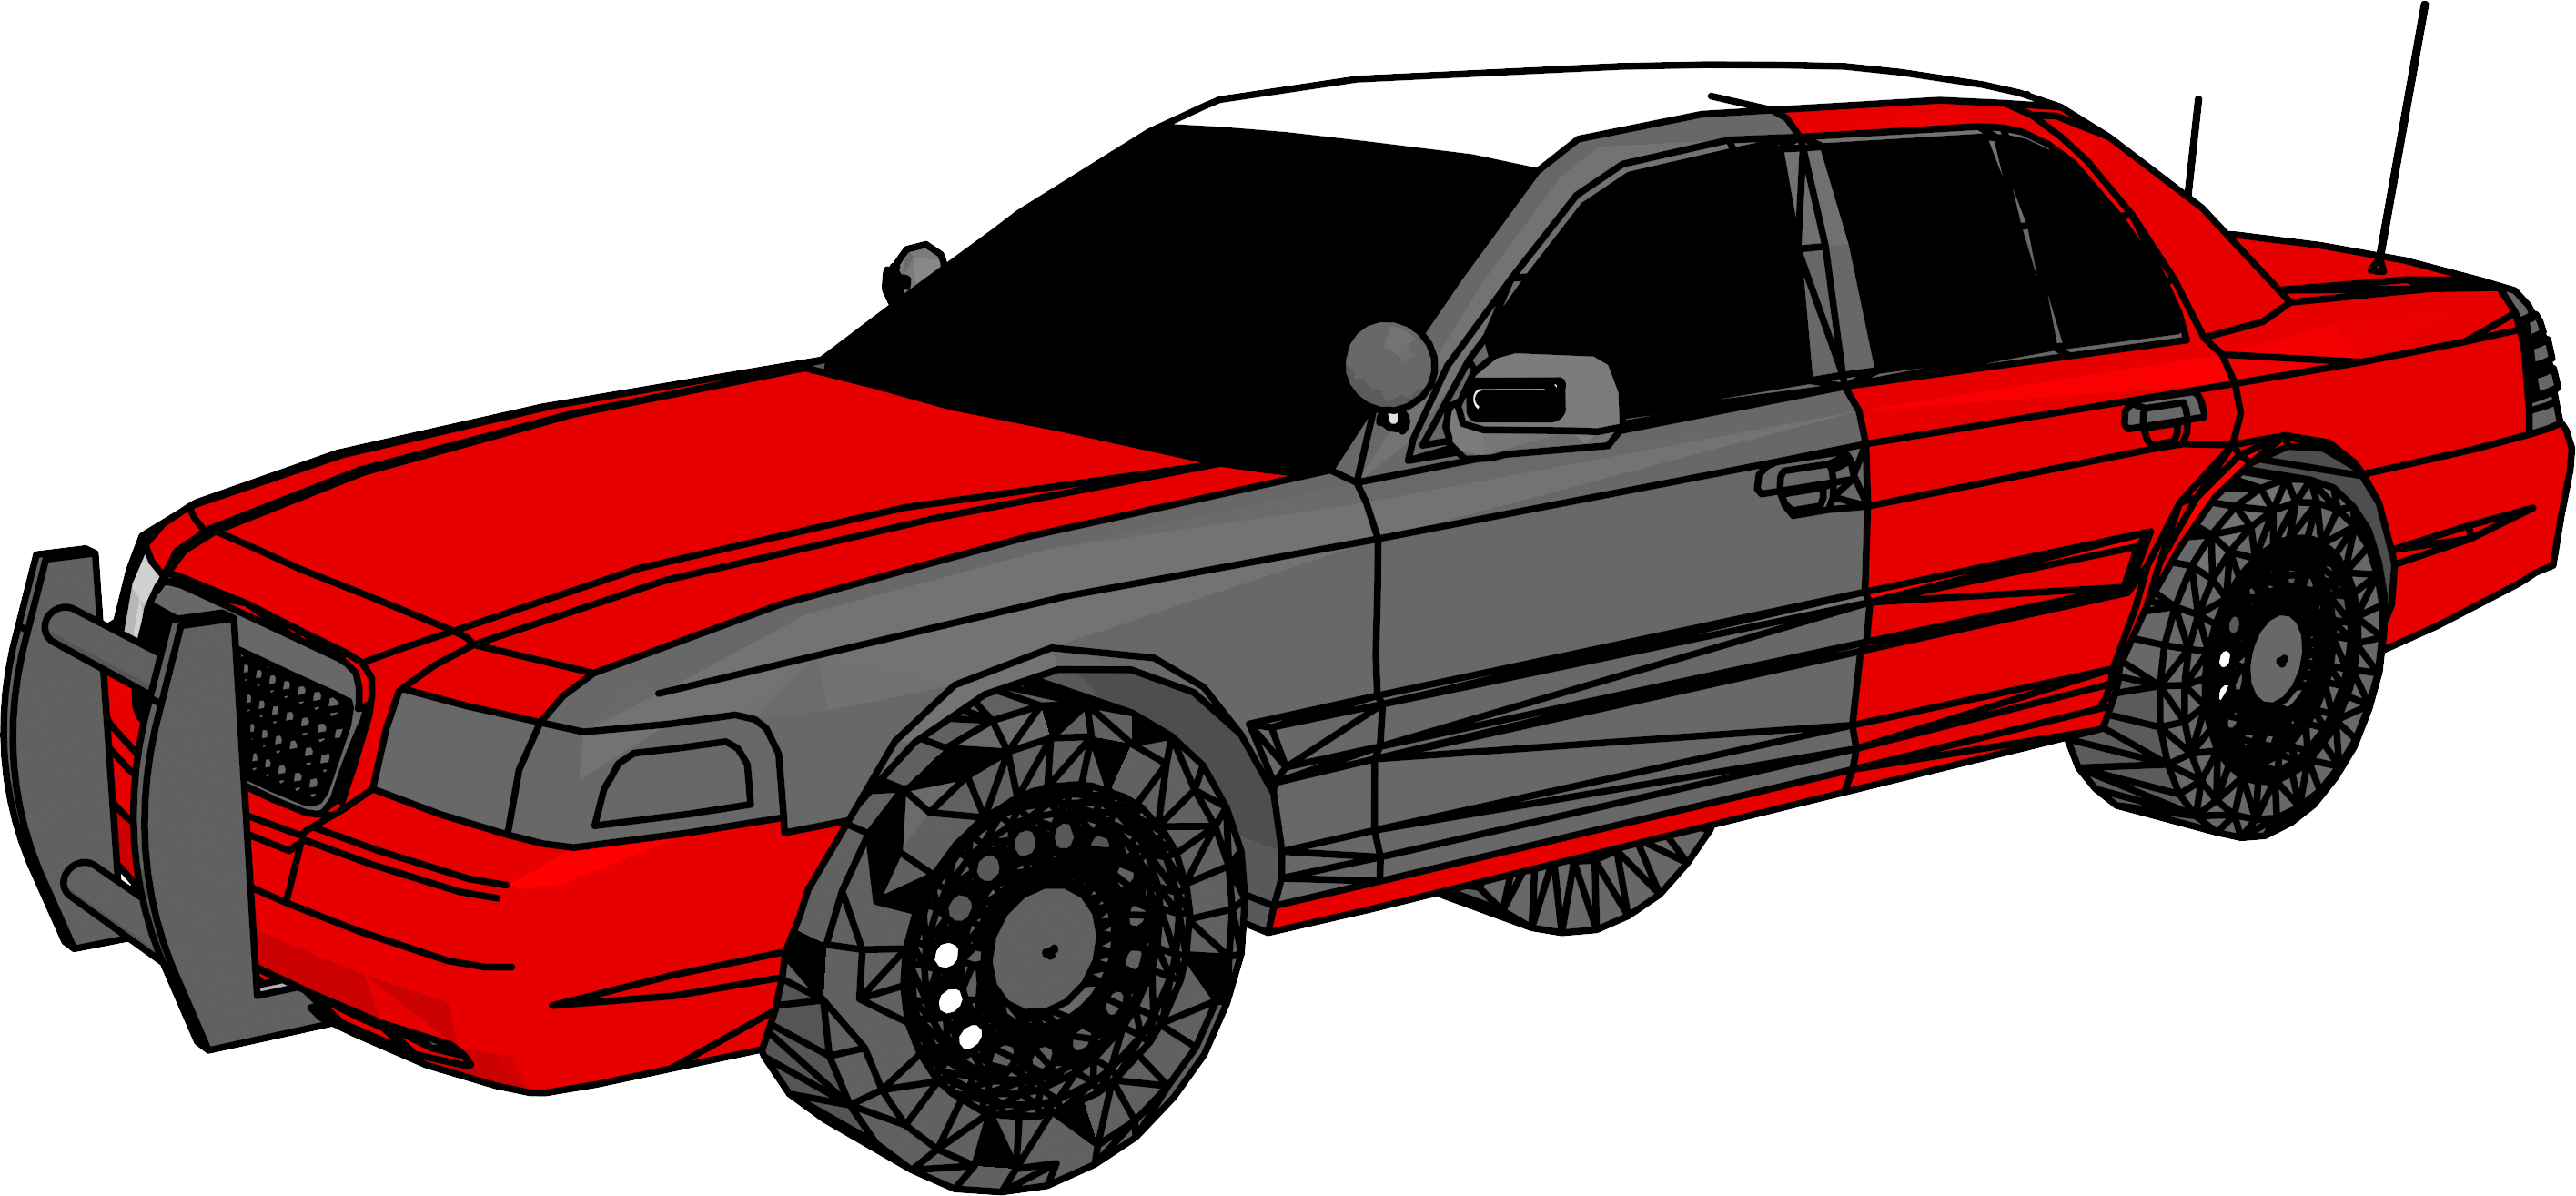 Car with flames clipart clip art stock Ford Crown Victoria Fire Chief's Car Clipart - Clipartly ... clip art stock